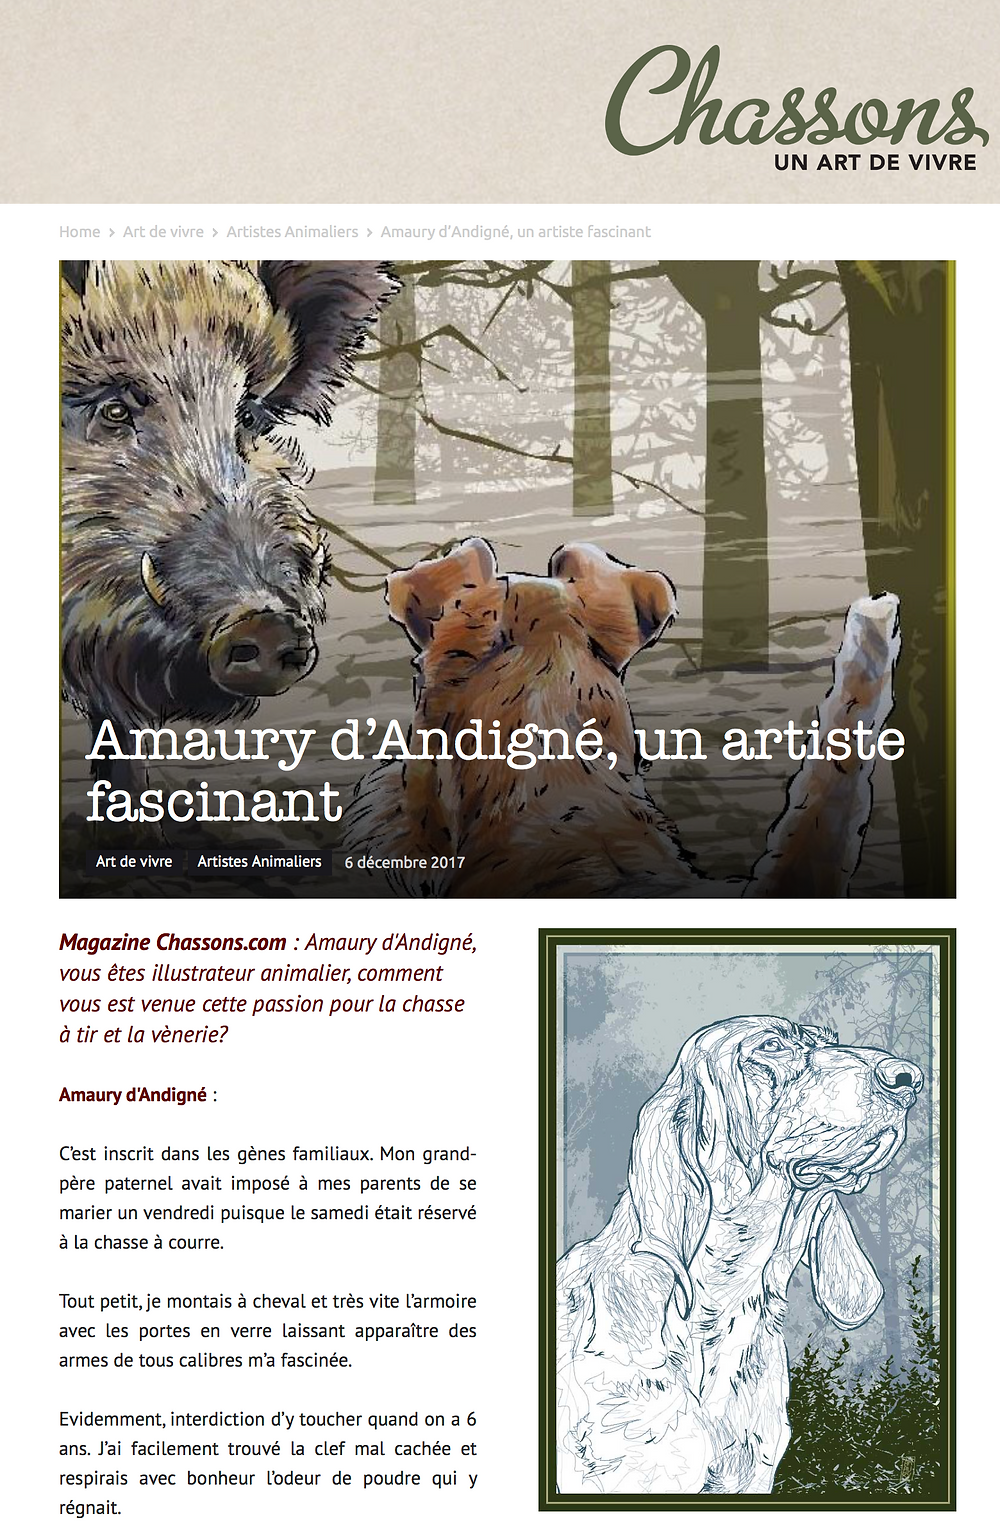 https://www.chassons.com/amaury-dandigne-artiste-fascinant/